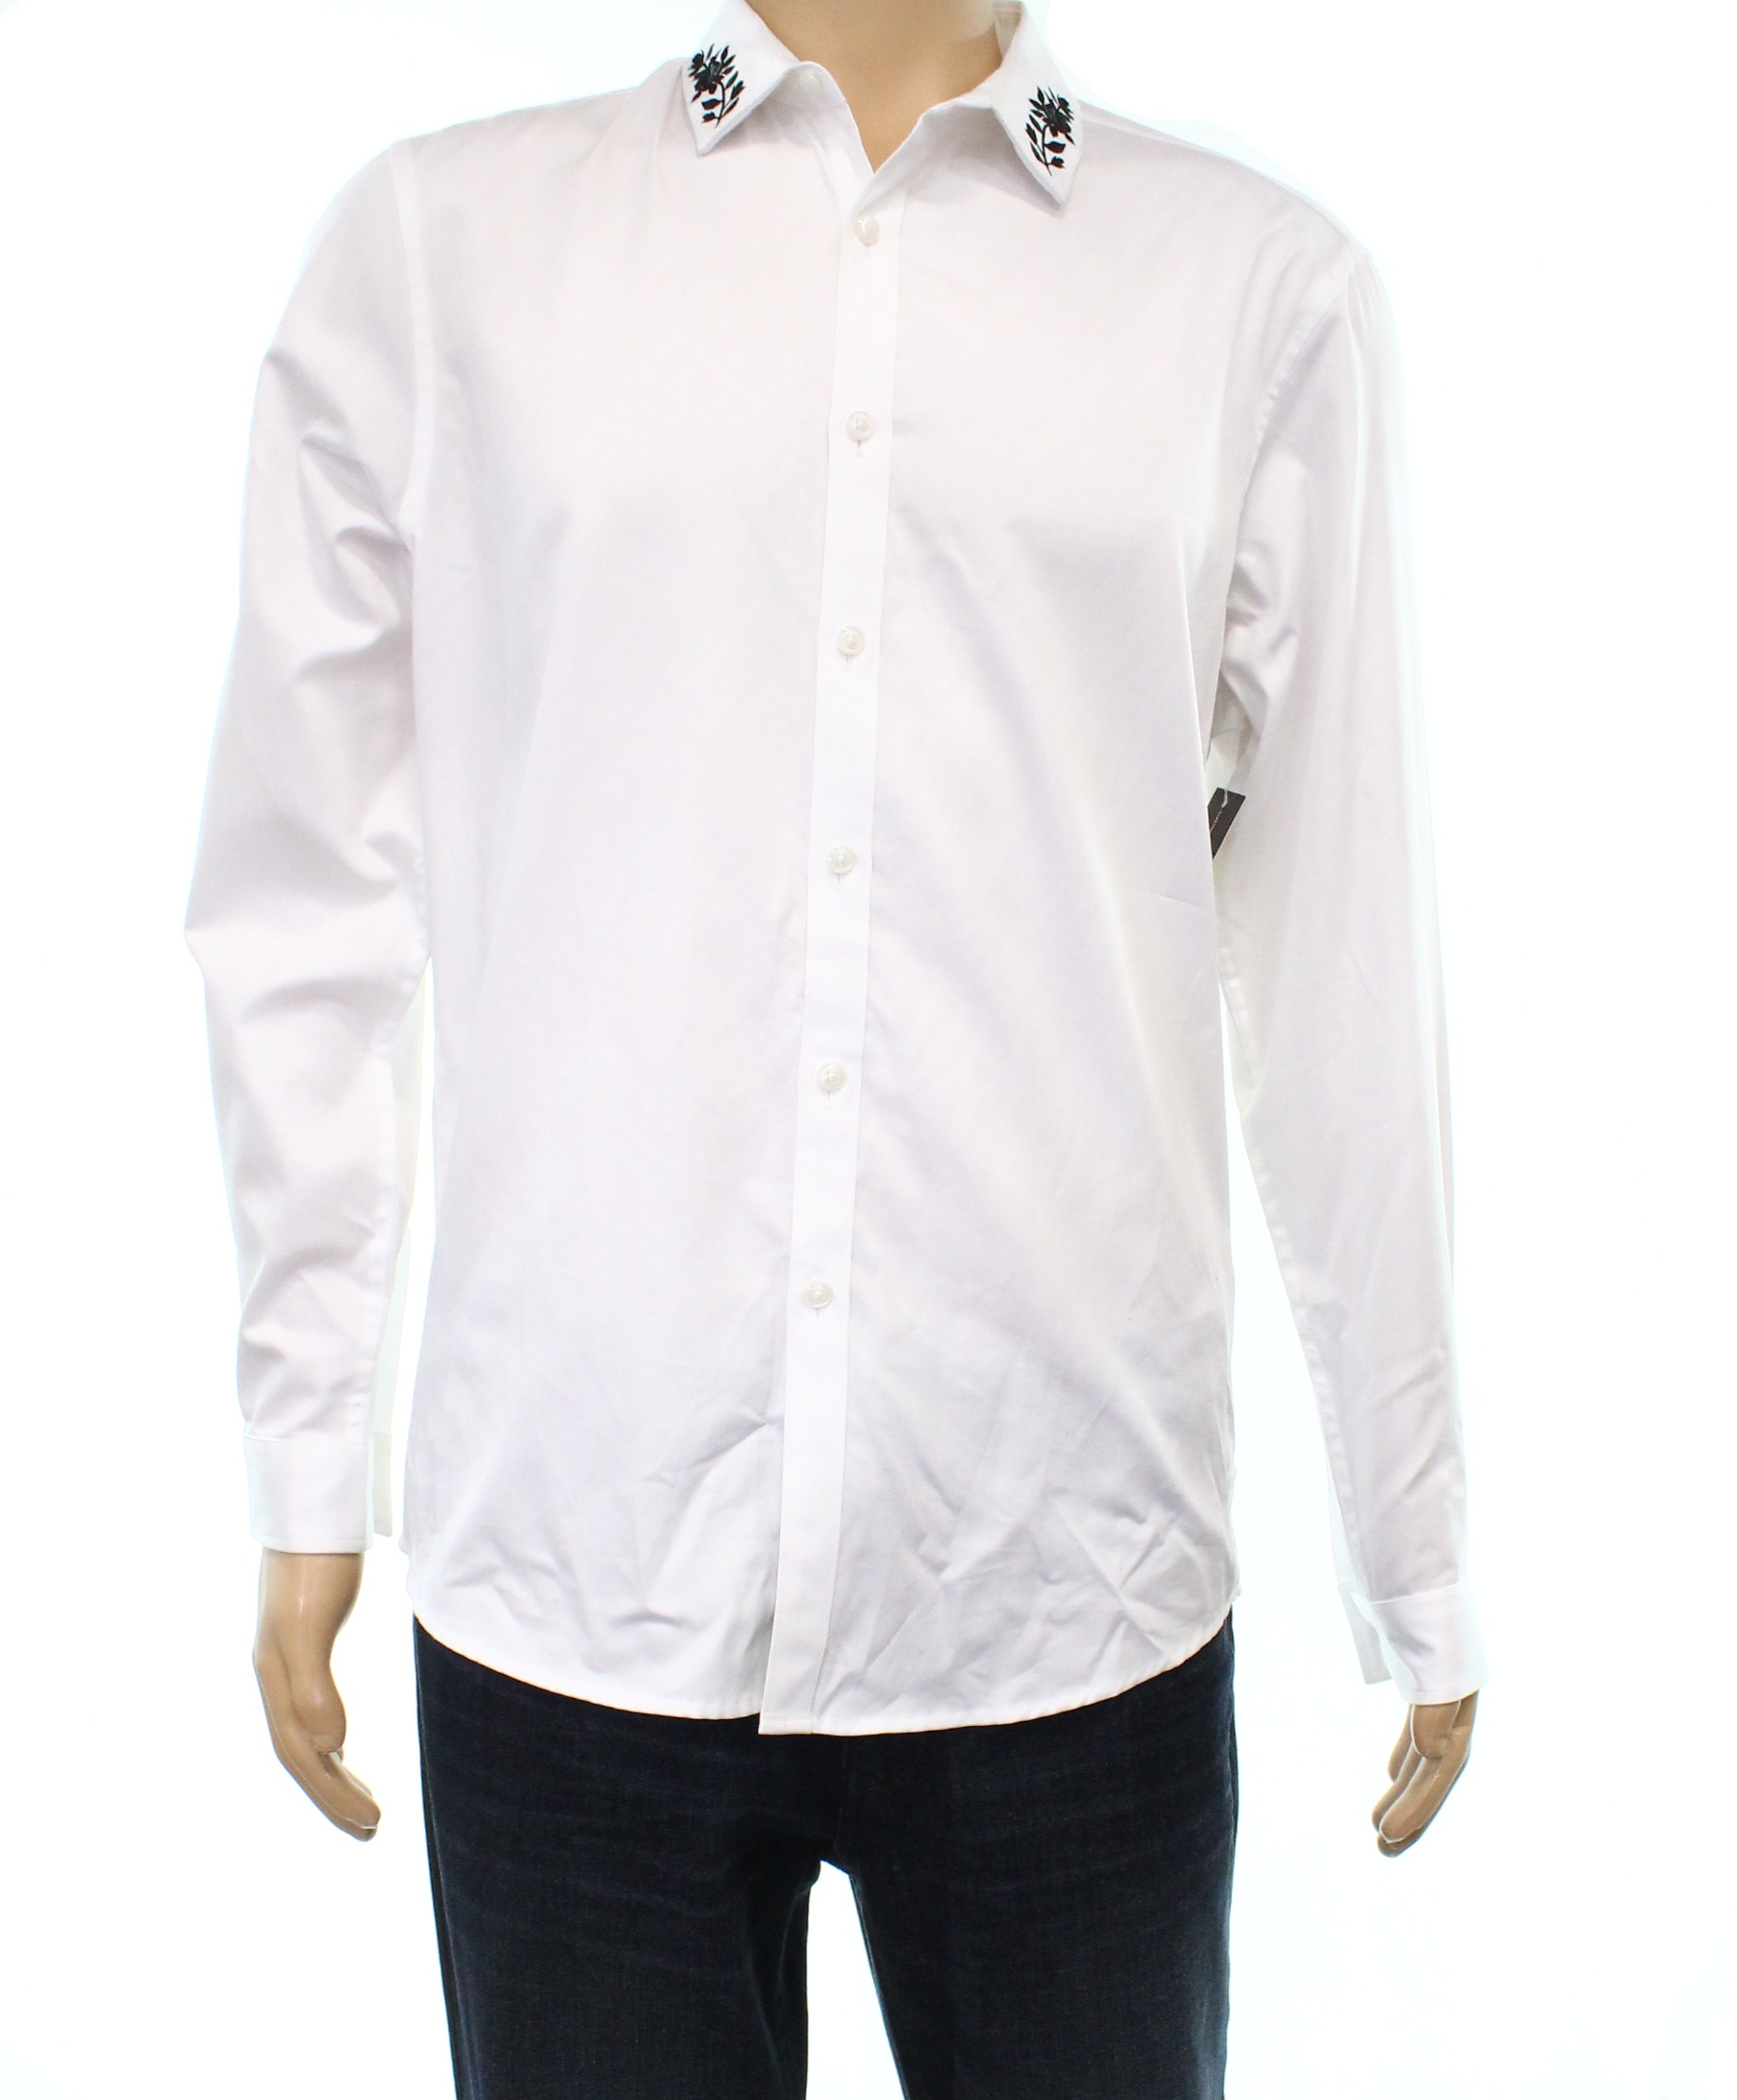 Inc New White Mens Size 2xl Embroidered Button Down Cotton Shirt 69